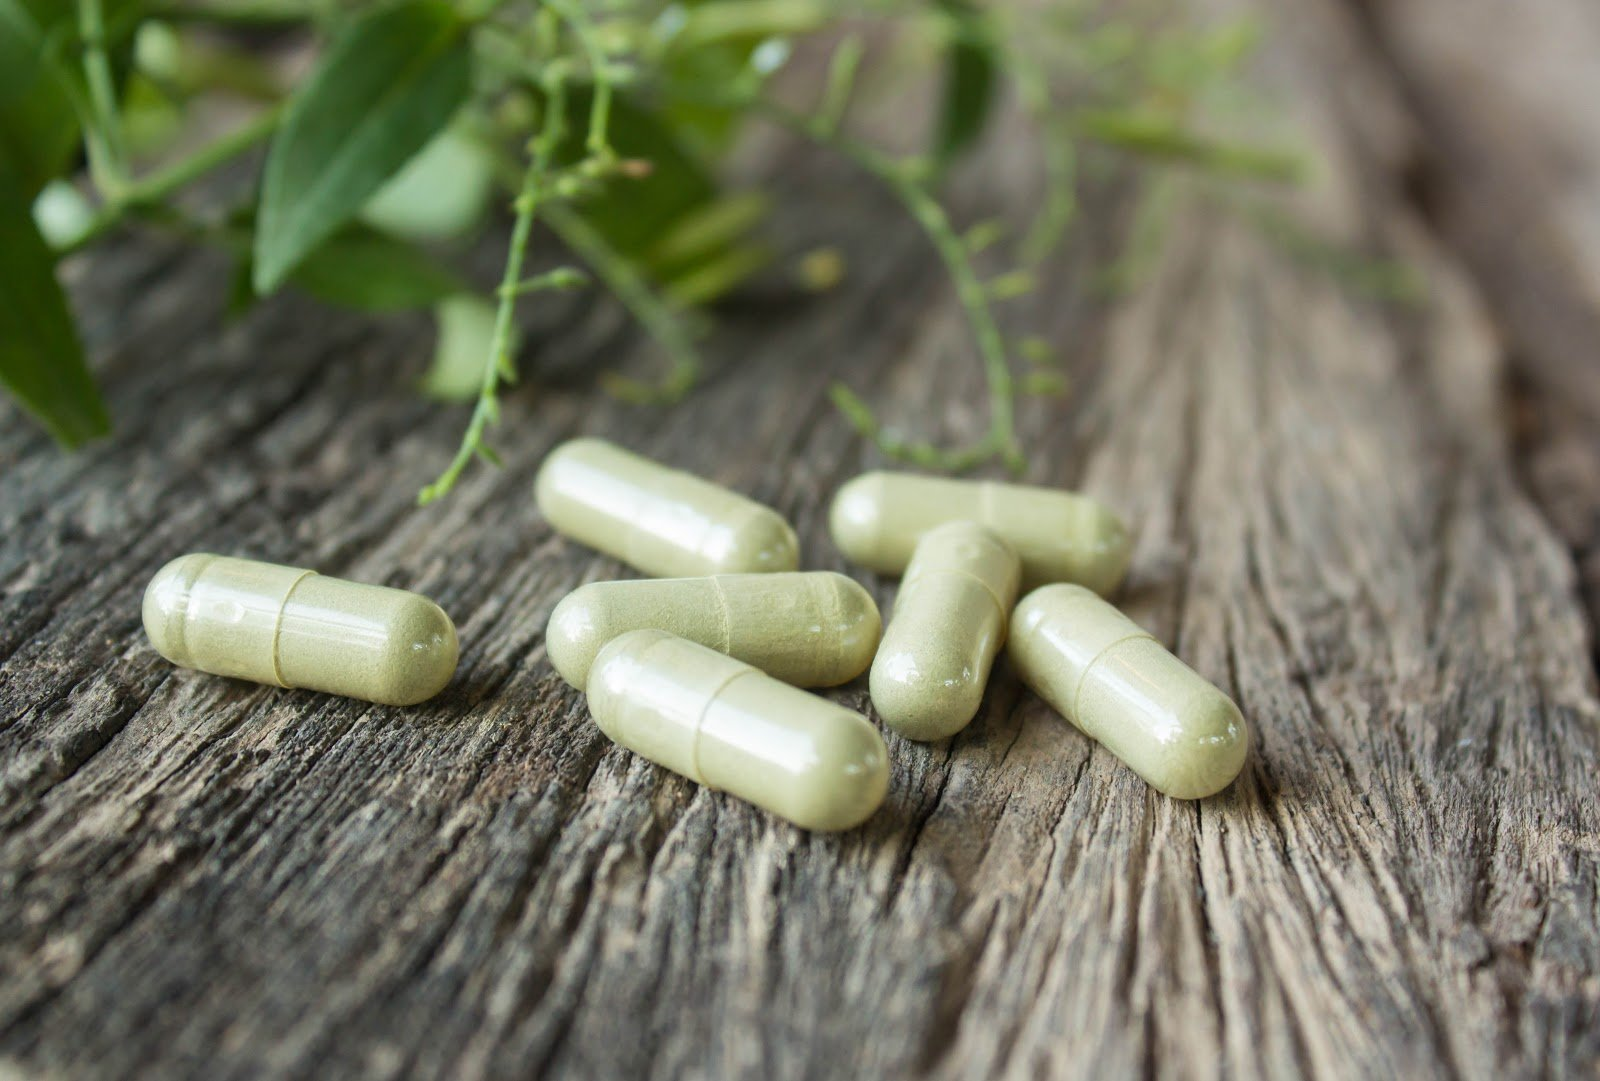 Supplements on a wooden table